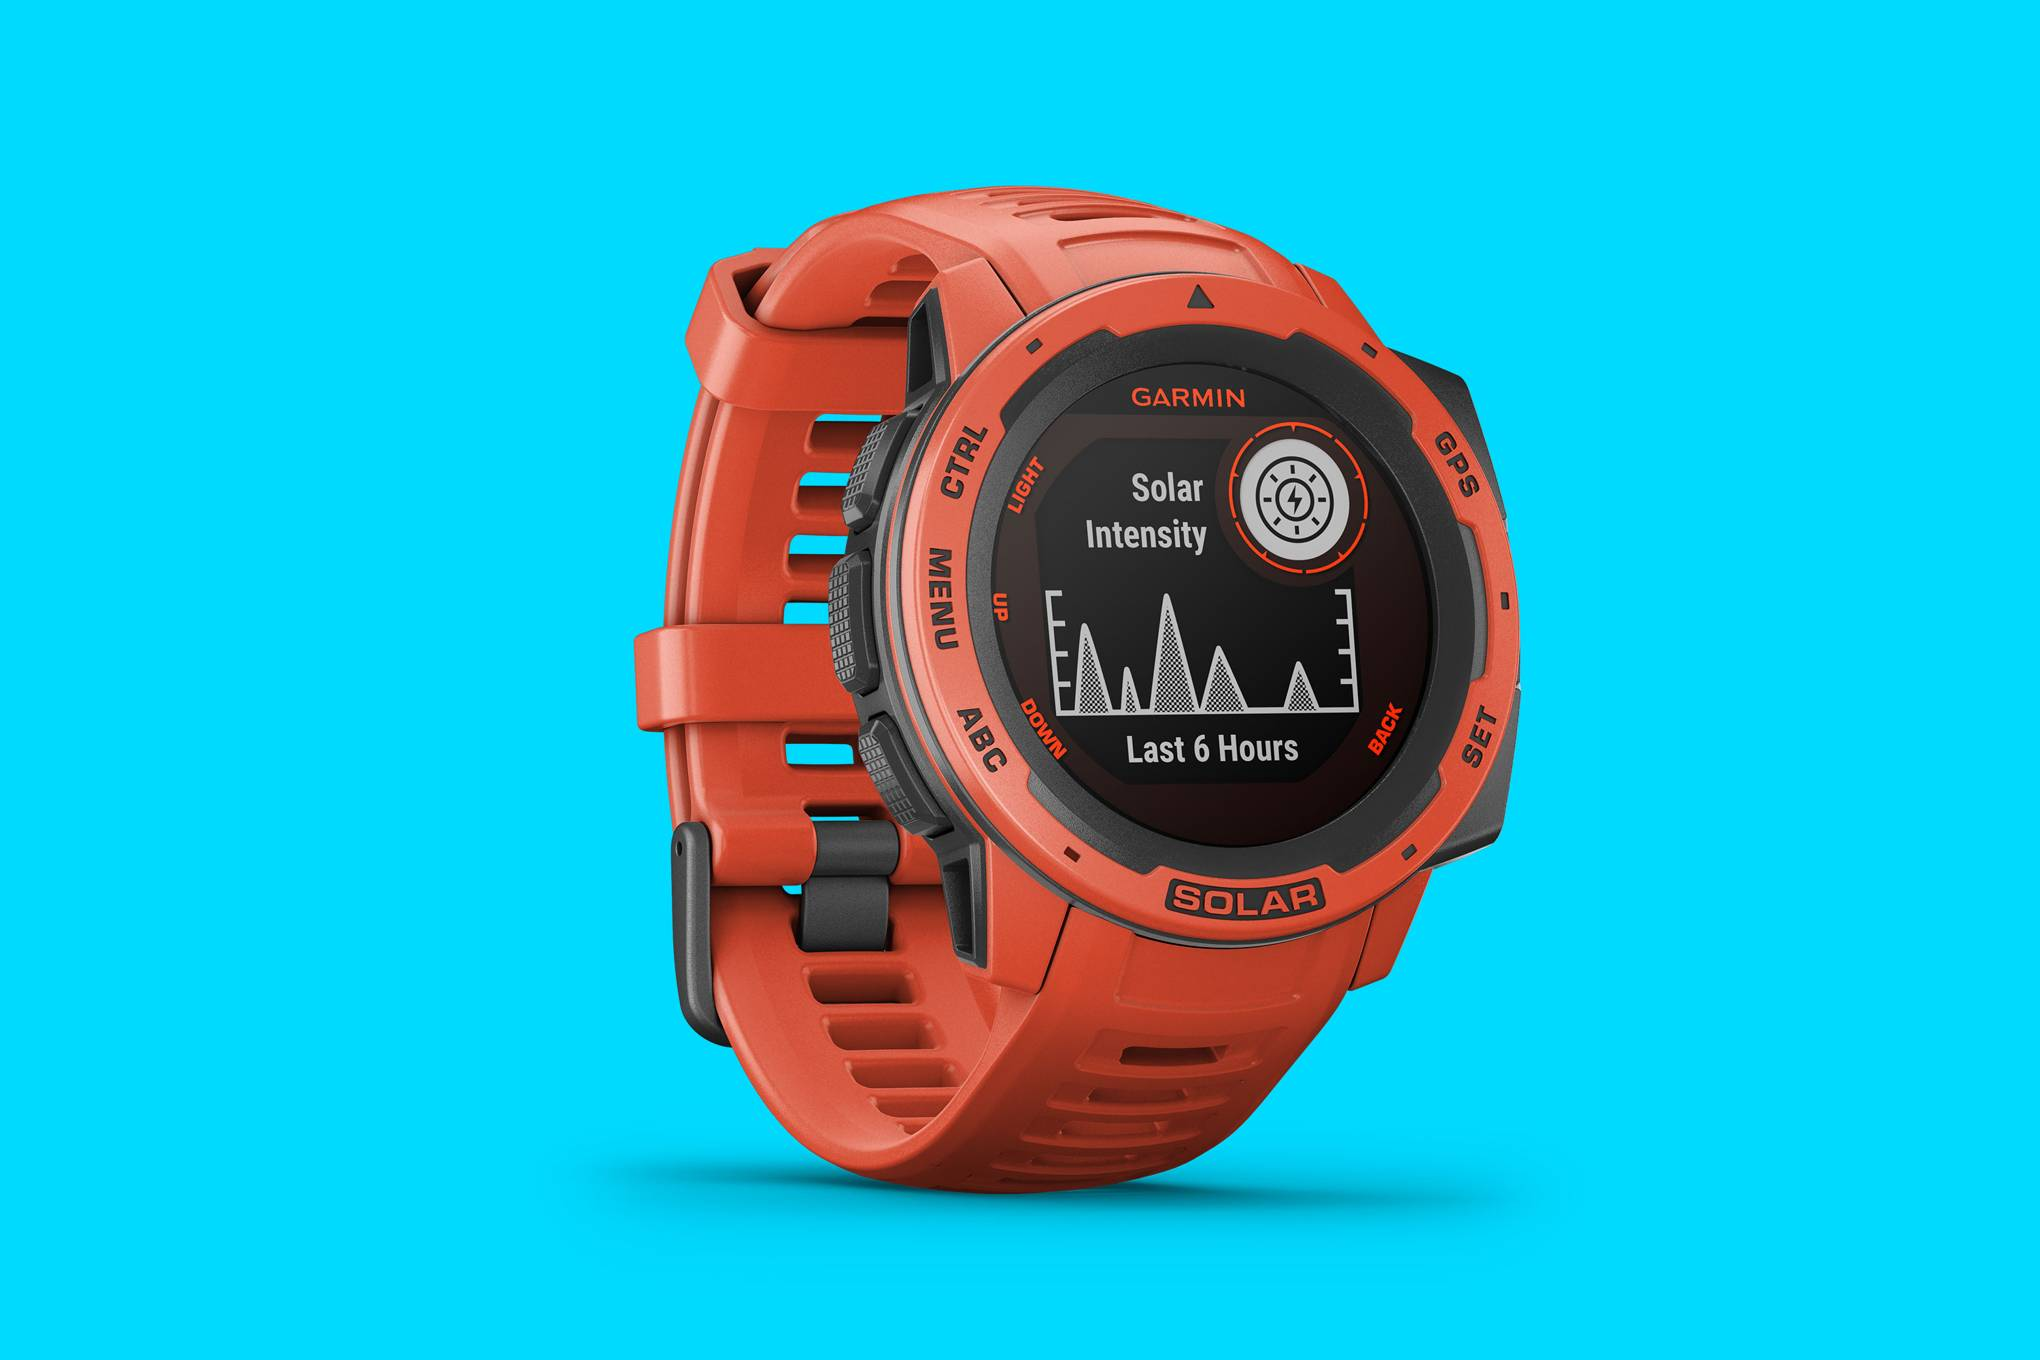 wired.co.uk - Sophie Charara - Garmin thinks solar charging is more than a sports watch gimmick